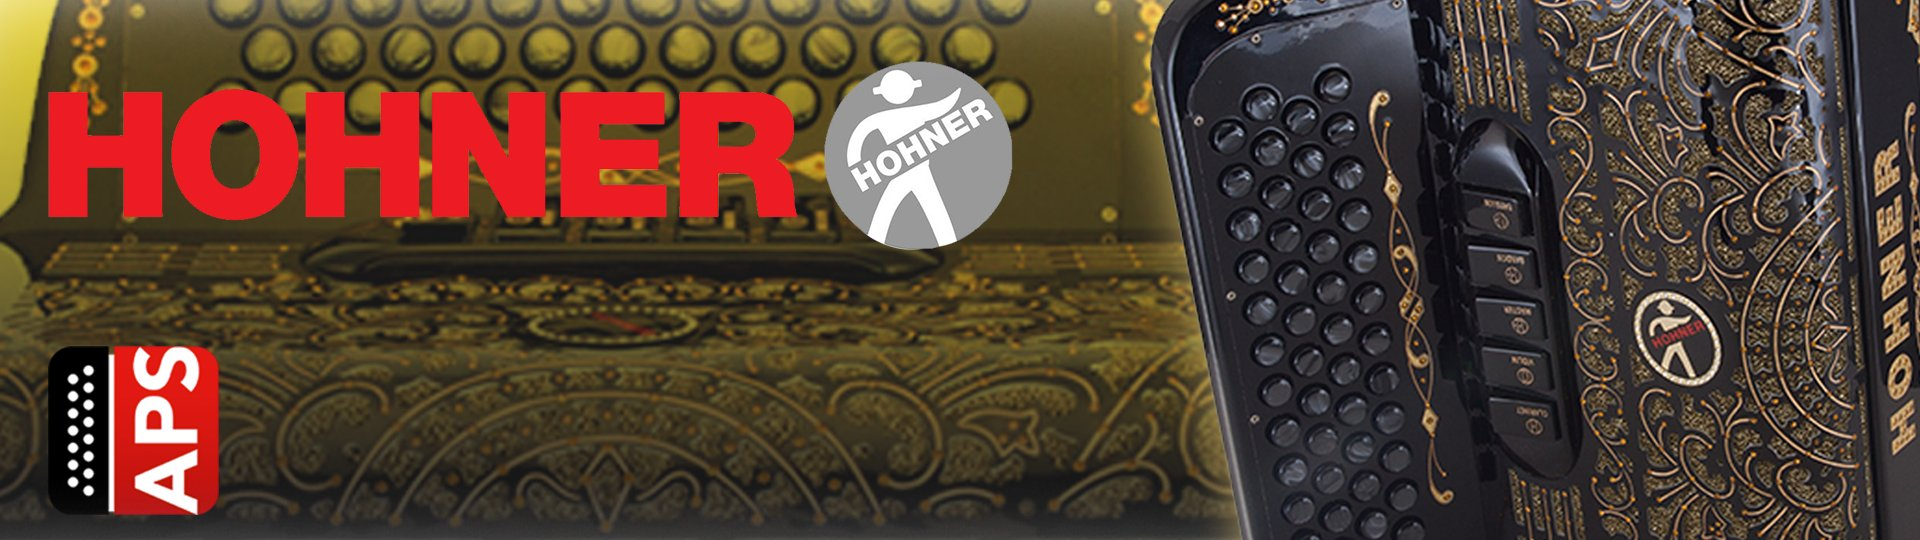 Coleccion Acordeon Hohner Hermes Music Banner